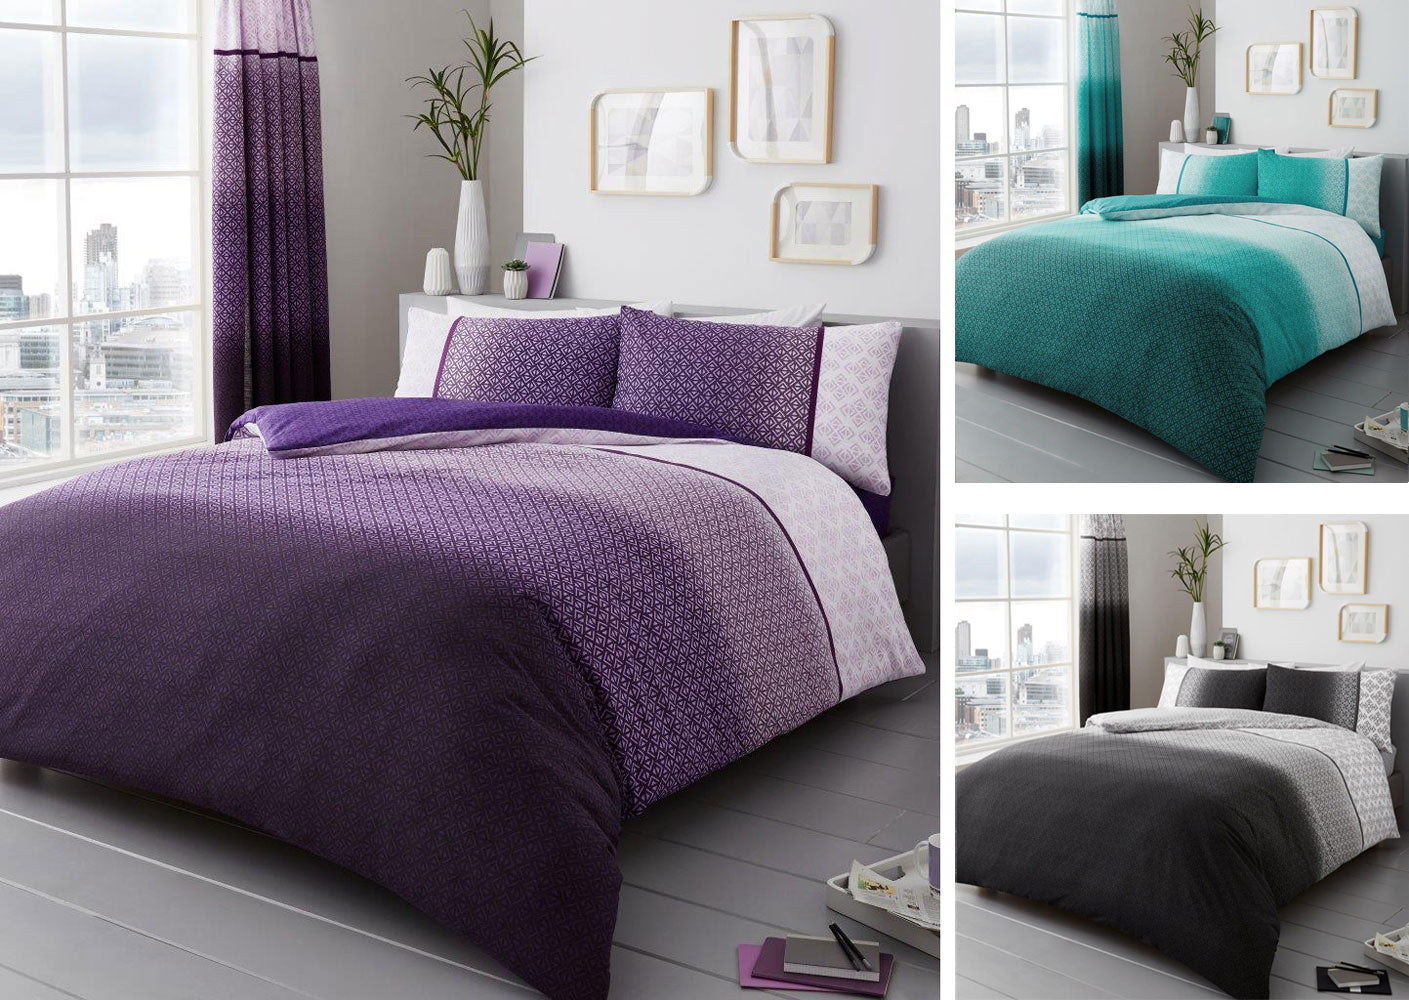 Duvet sets in grey teal or purple geometric shapes quilt cover & pillow cases